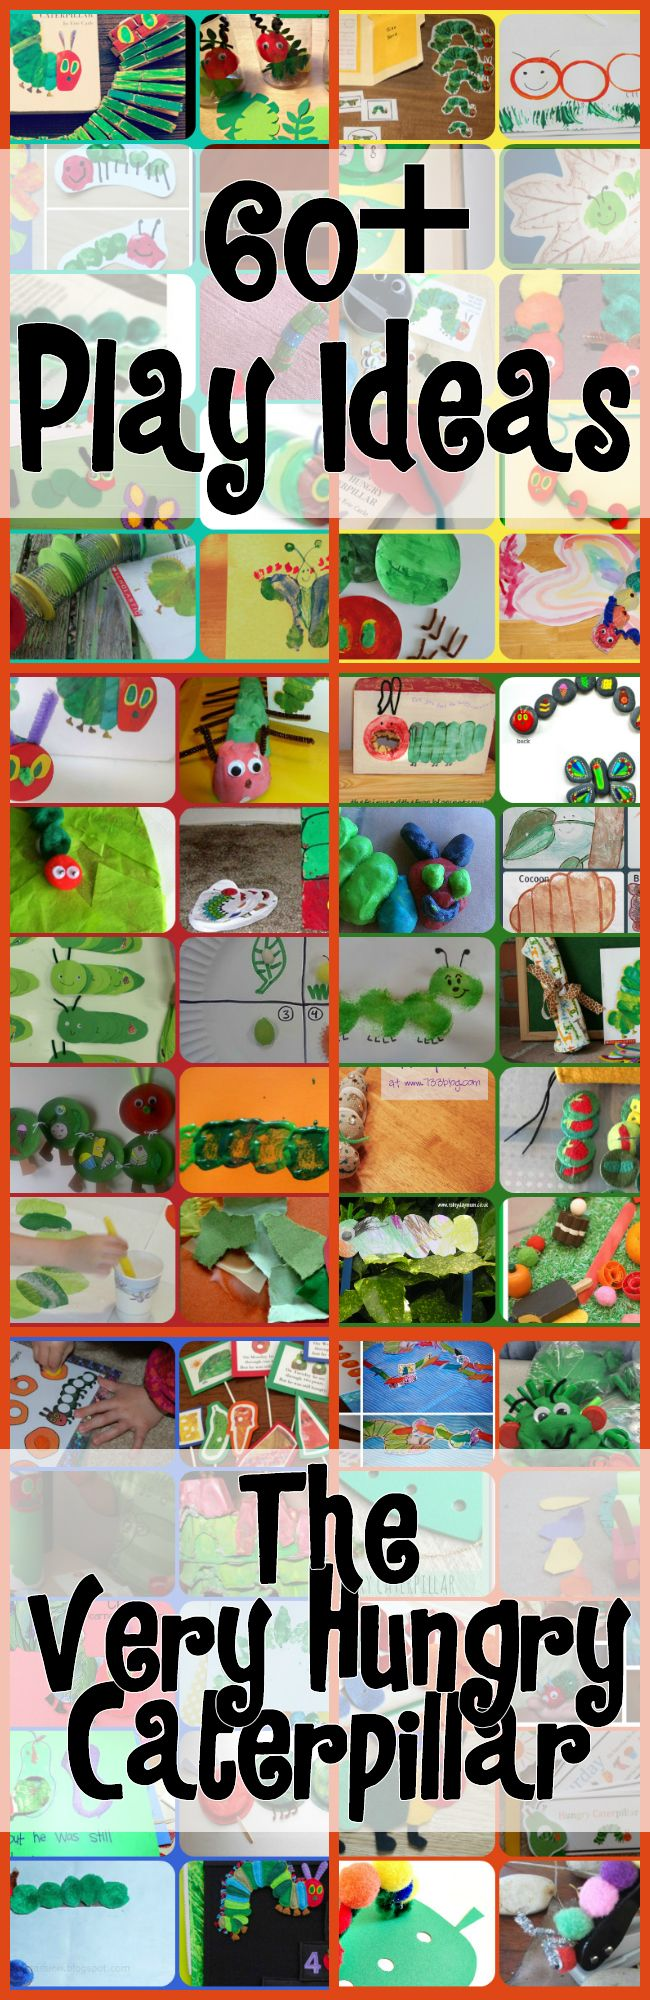 60+ Play Ideas Based On The Very Hungry Caterpillar Book By Eric Carle.